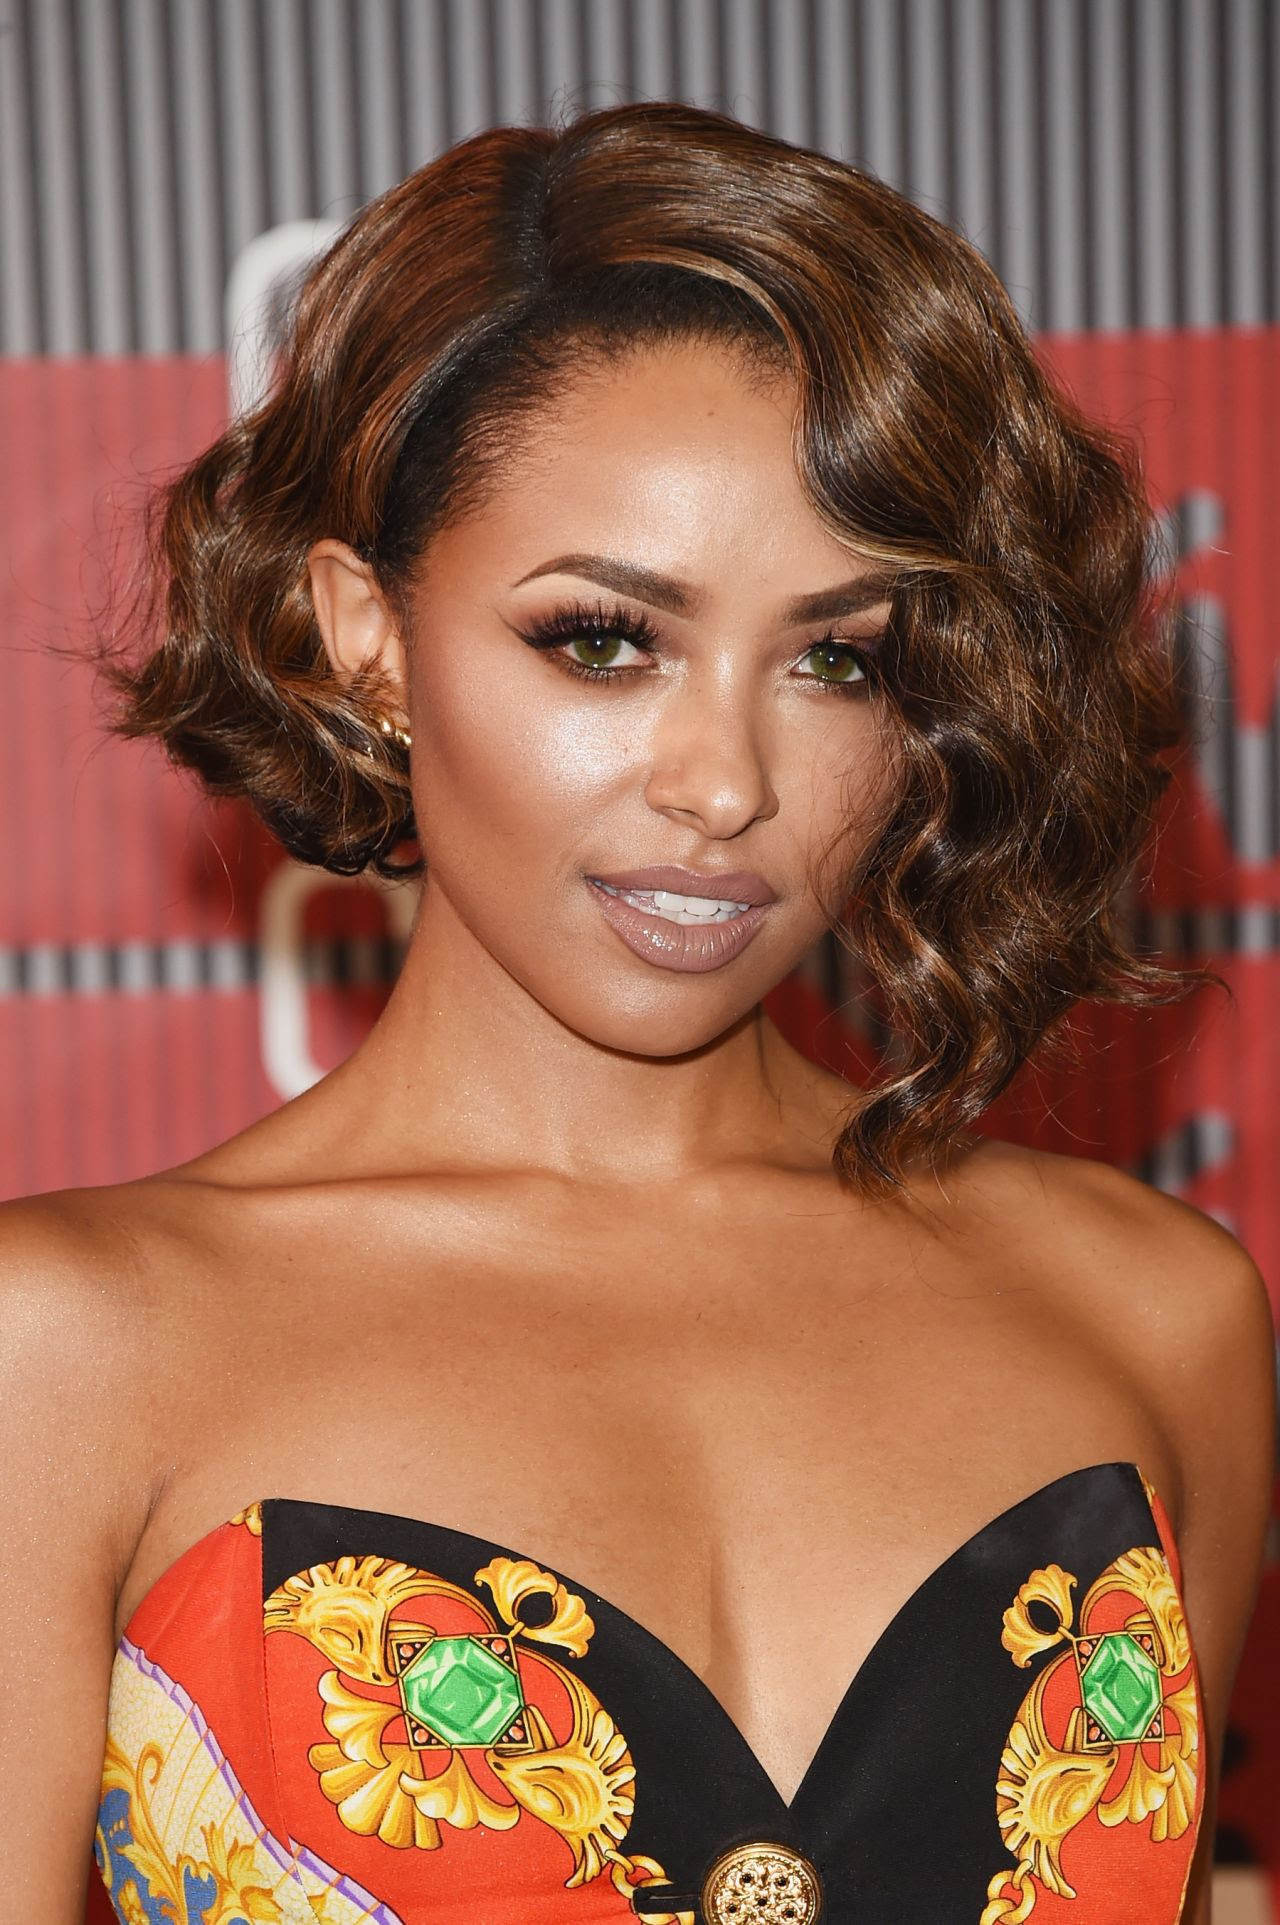 http://celebmafia.com/wp-content/uploads/2015/08/kat-graham-2015-mtv-video-music-awards-at-microsoft-theater-in-los-angeles_3.jpg